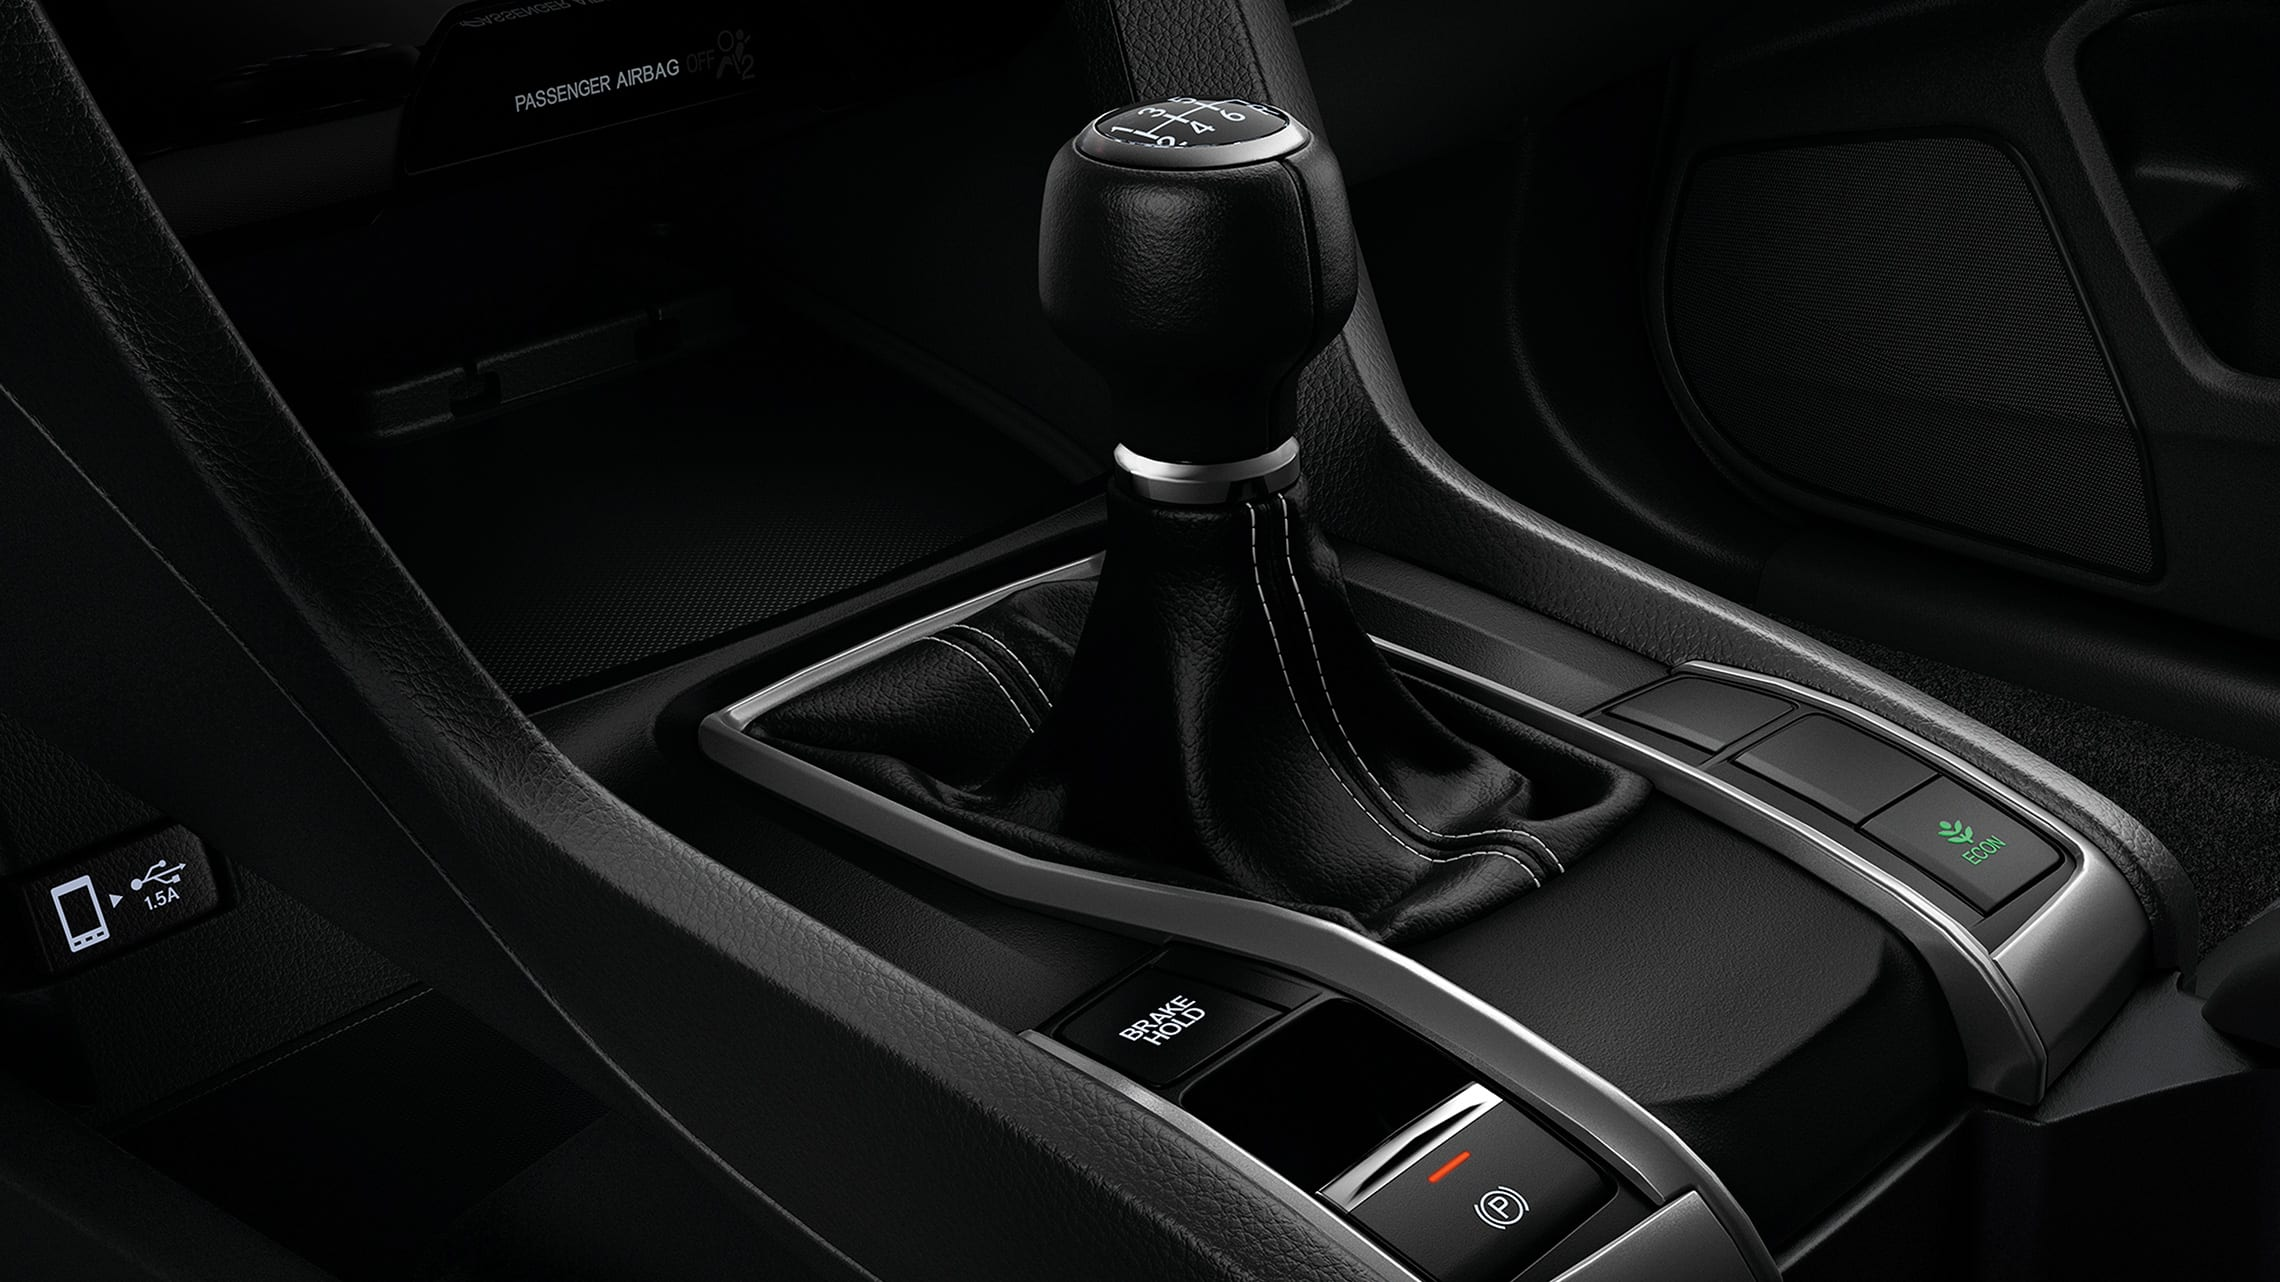 6-speed manual transmission shifter detail in 2020 Honda Civic Sport Hatchback.